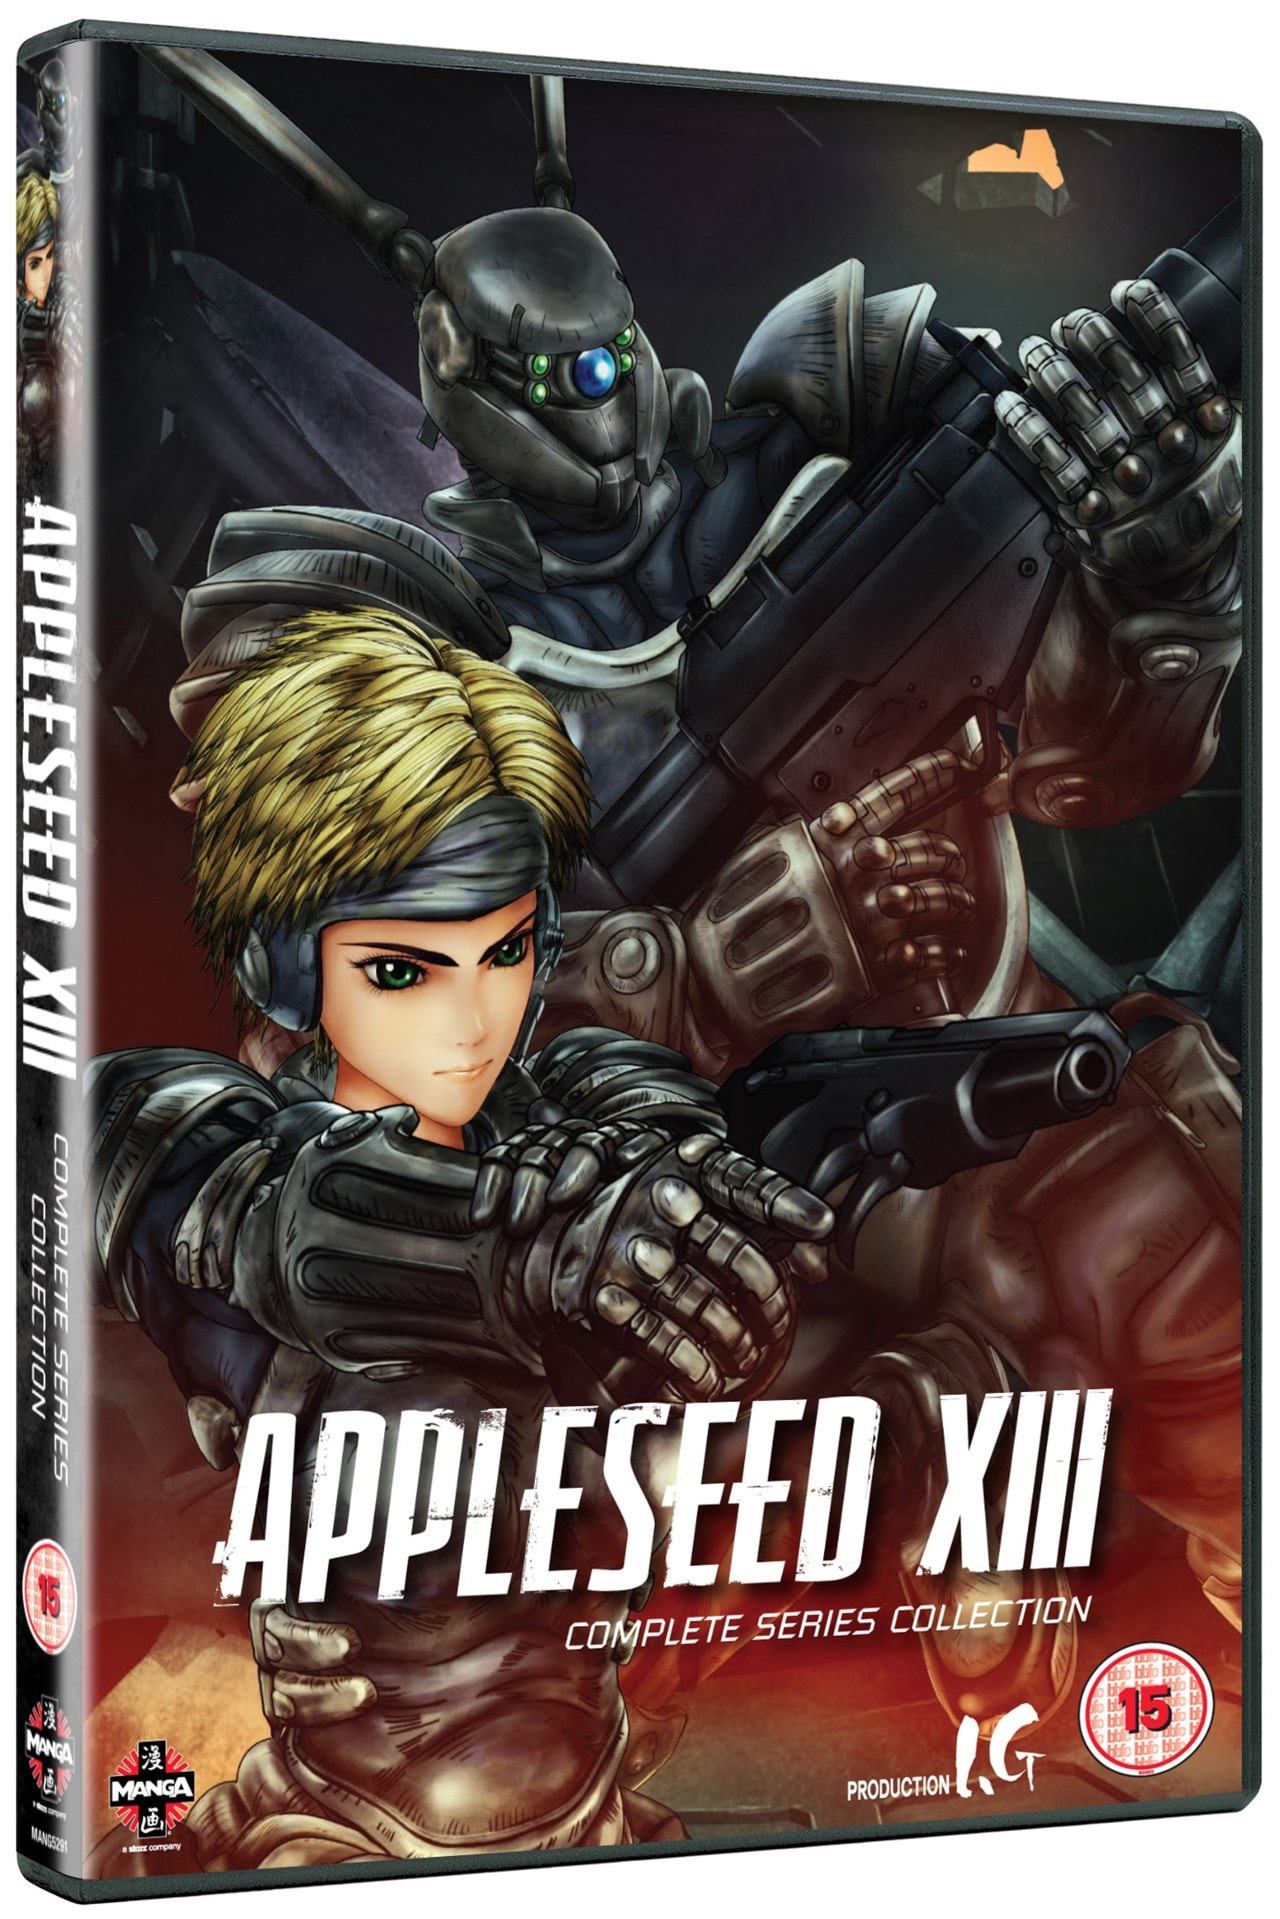 Appleseed XIII: Complete Series Collection - 2